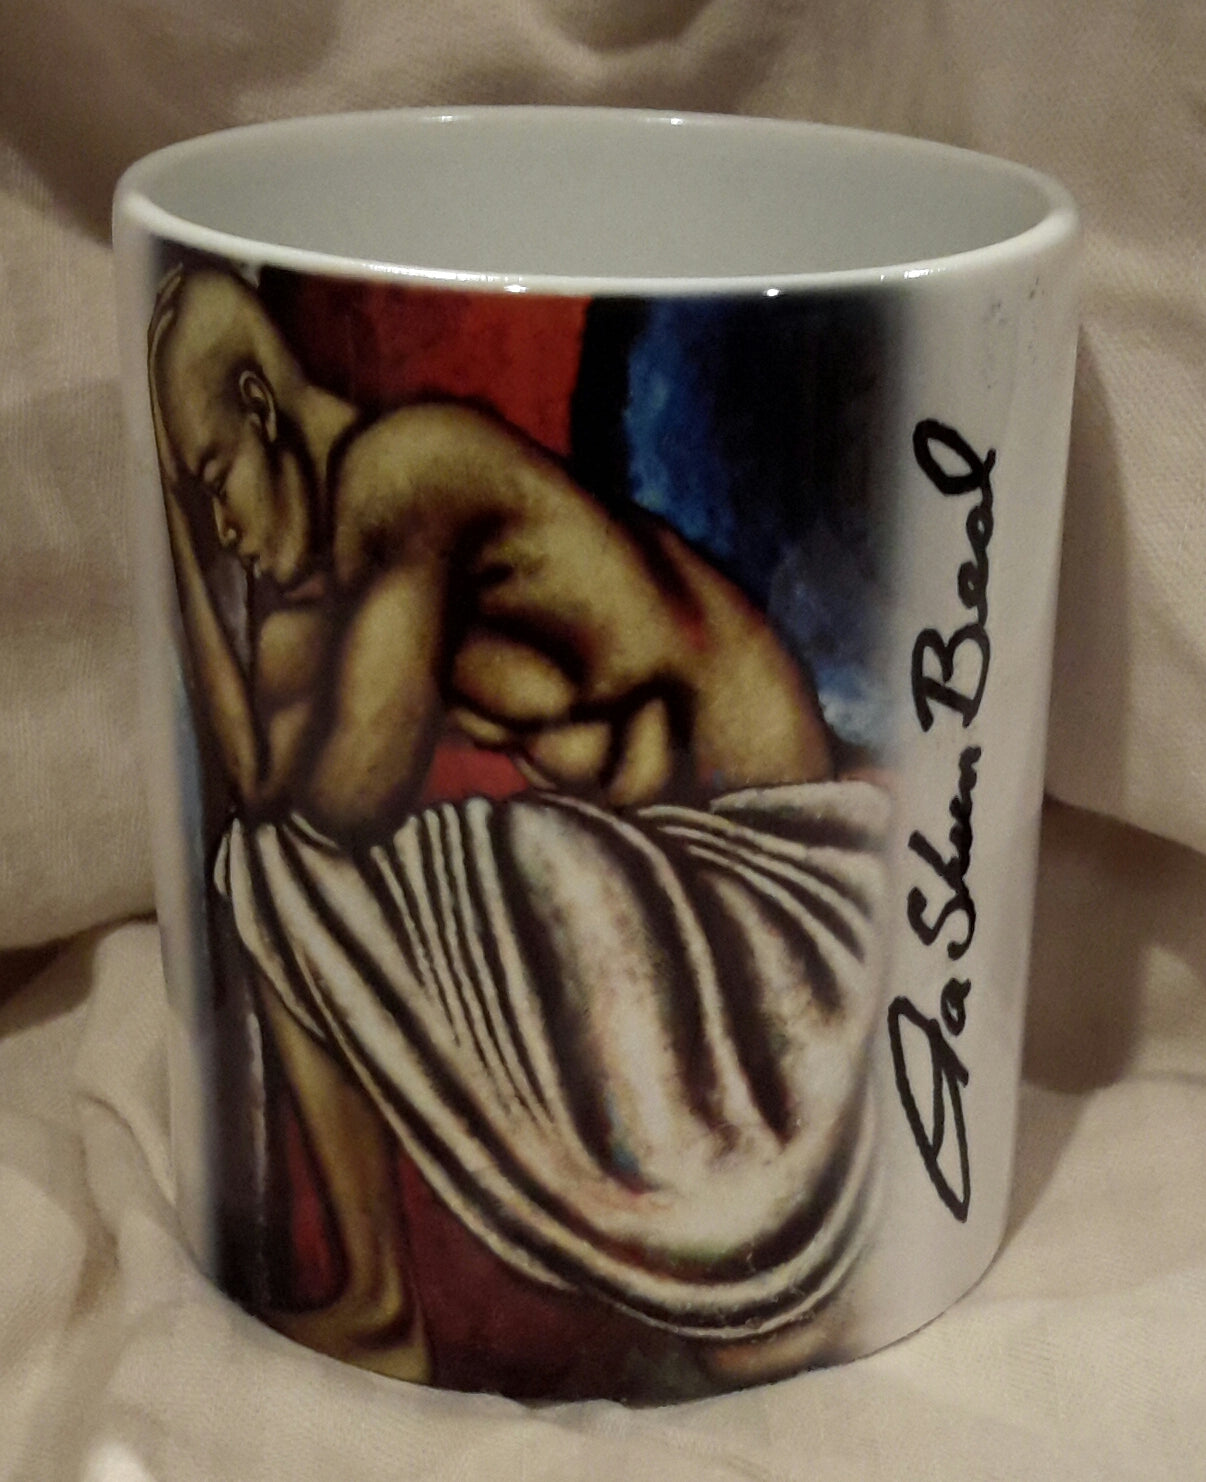 My Lord Coffee Mug - Lashunbeal.com